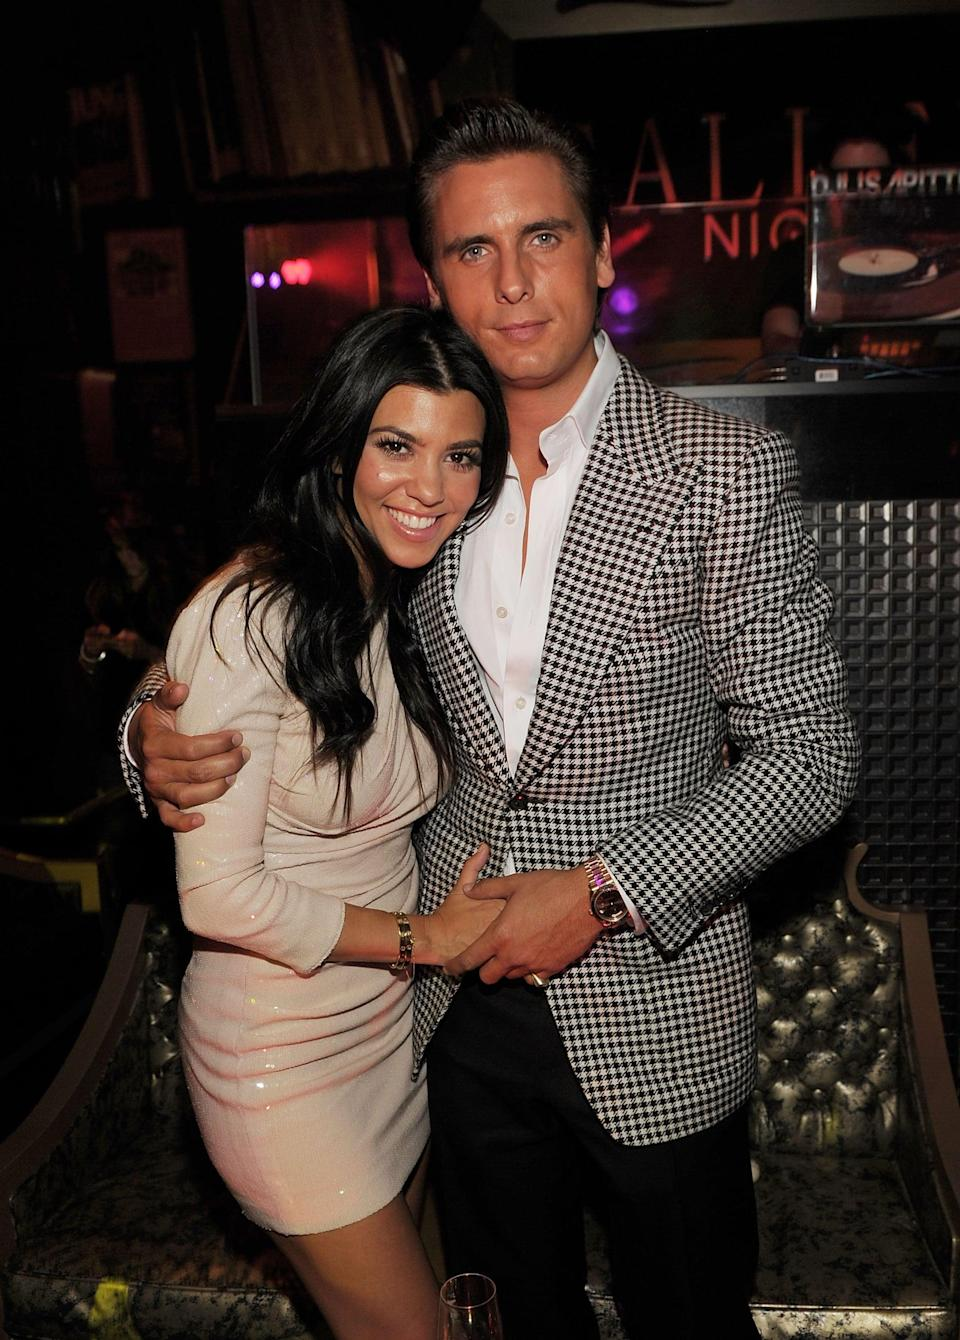 "<p>Kourtney's longest relationship to date was with Scott. <a href=""https://www.cosmopolitan.com/uk/entertainment/a9967027/scott-disick-and-kourtney-kardashian-a-timeline-of-their-relationship/"" class=""link rapid-noclick-resp"" rel=""nofollow noopener"" target=""_blank"" data-ylk=""slk:The two first met"">The two first met</a> in 2006 after being introduced at a house party by Joe Francis, and <a href=""https://www.popsugar.com/celebrity/Kourtney-Kardashian-Sofia-Richie-Mexico-Pictures-2018-45627603"" class=""link rapid-noclick-resp"" rel=""nofollow noopener"" target=""_blank"" data-ylk=""slk:they dated on and off"">they dated on and off</a> until 2017. Though they are no longer together, the pair are committed to coparenting <a href=""https://www.popsugar.com/celebrity/Kourtney-Kardashian-Cutest-Family-Photos-39107019"" class=""link rapid-noclick-resp"" rel=""nofollow noopener"" target=""_blank"" data-ylk=""slk:their three children"">their three children</a>, 11-year-old son Mason, 8-year-old daughter Penelope, and 6-year-old son Reign.</p>"